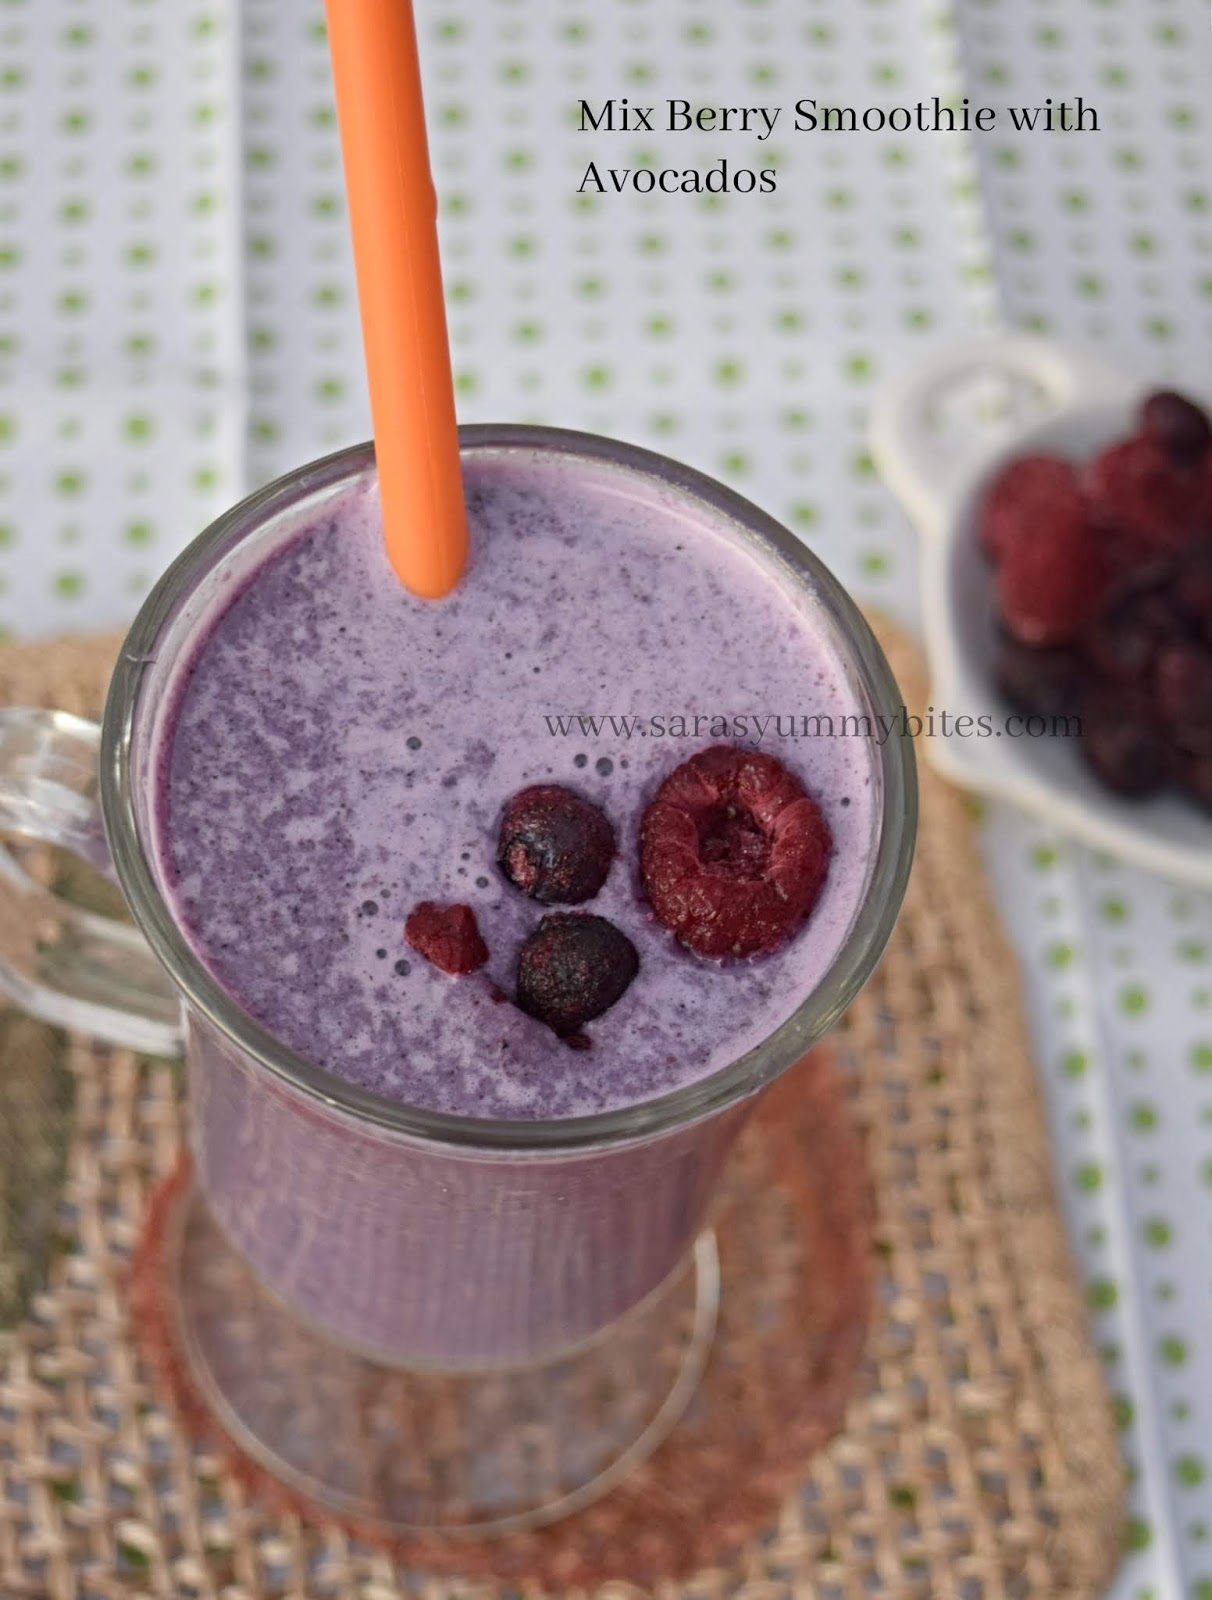 Mix Berry Smoothie with Avocados